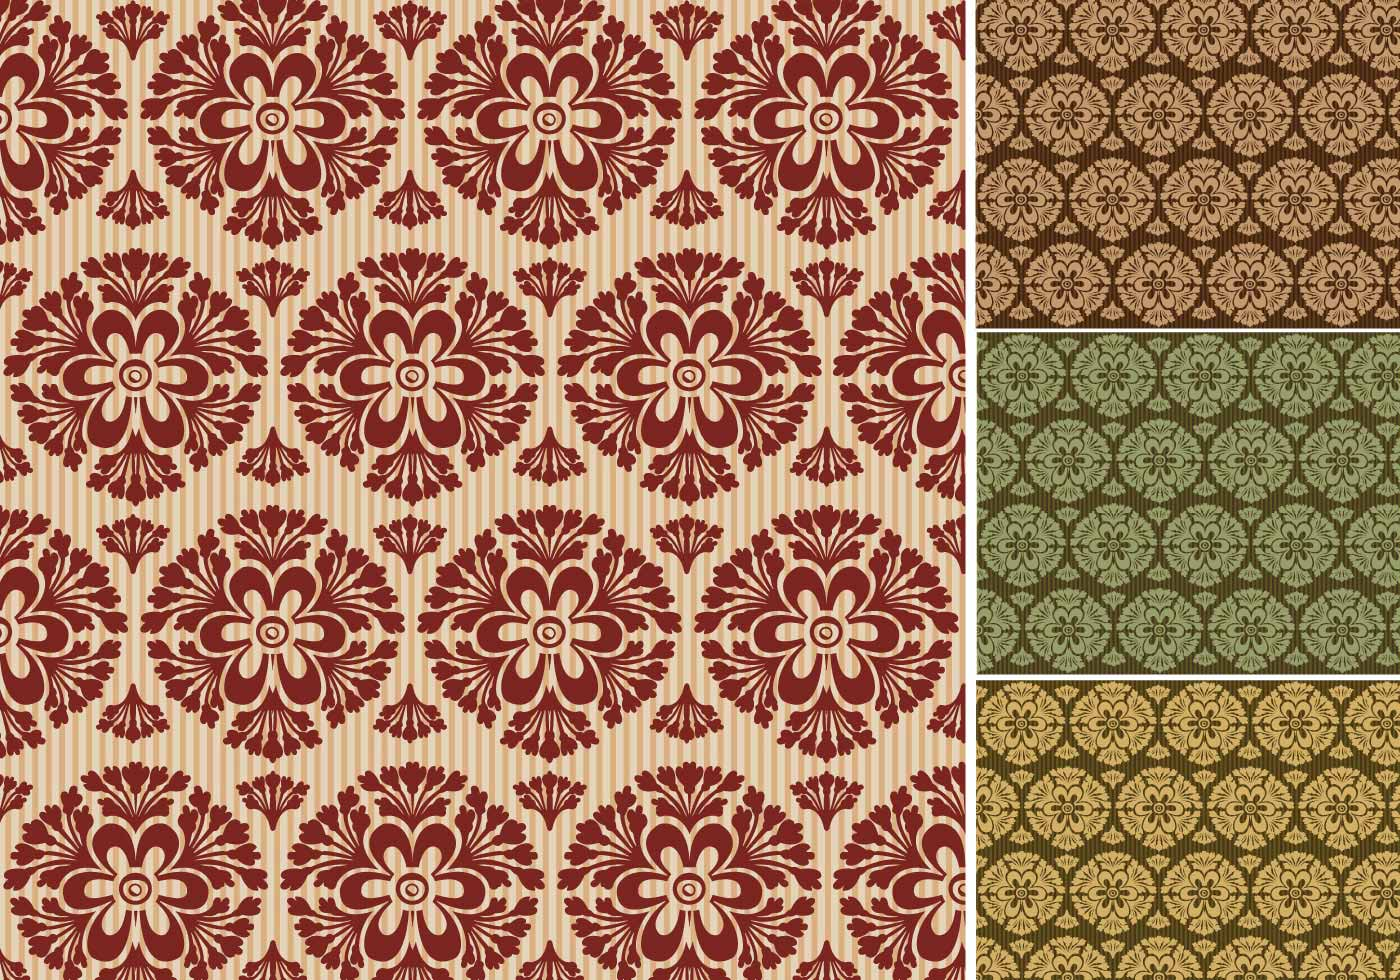 Wallpaper Vector Pack of Seamless Retro Wallpapers